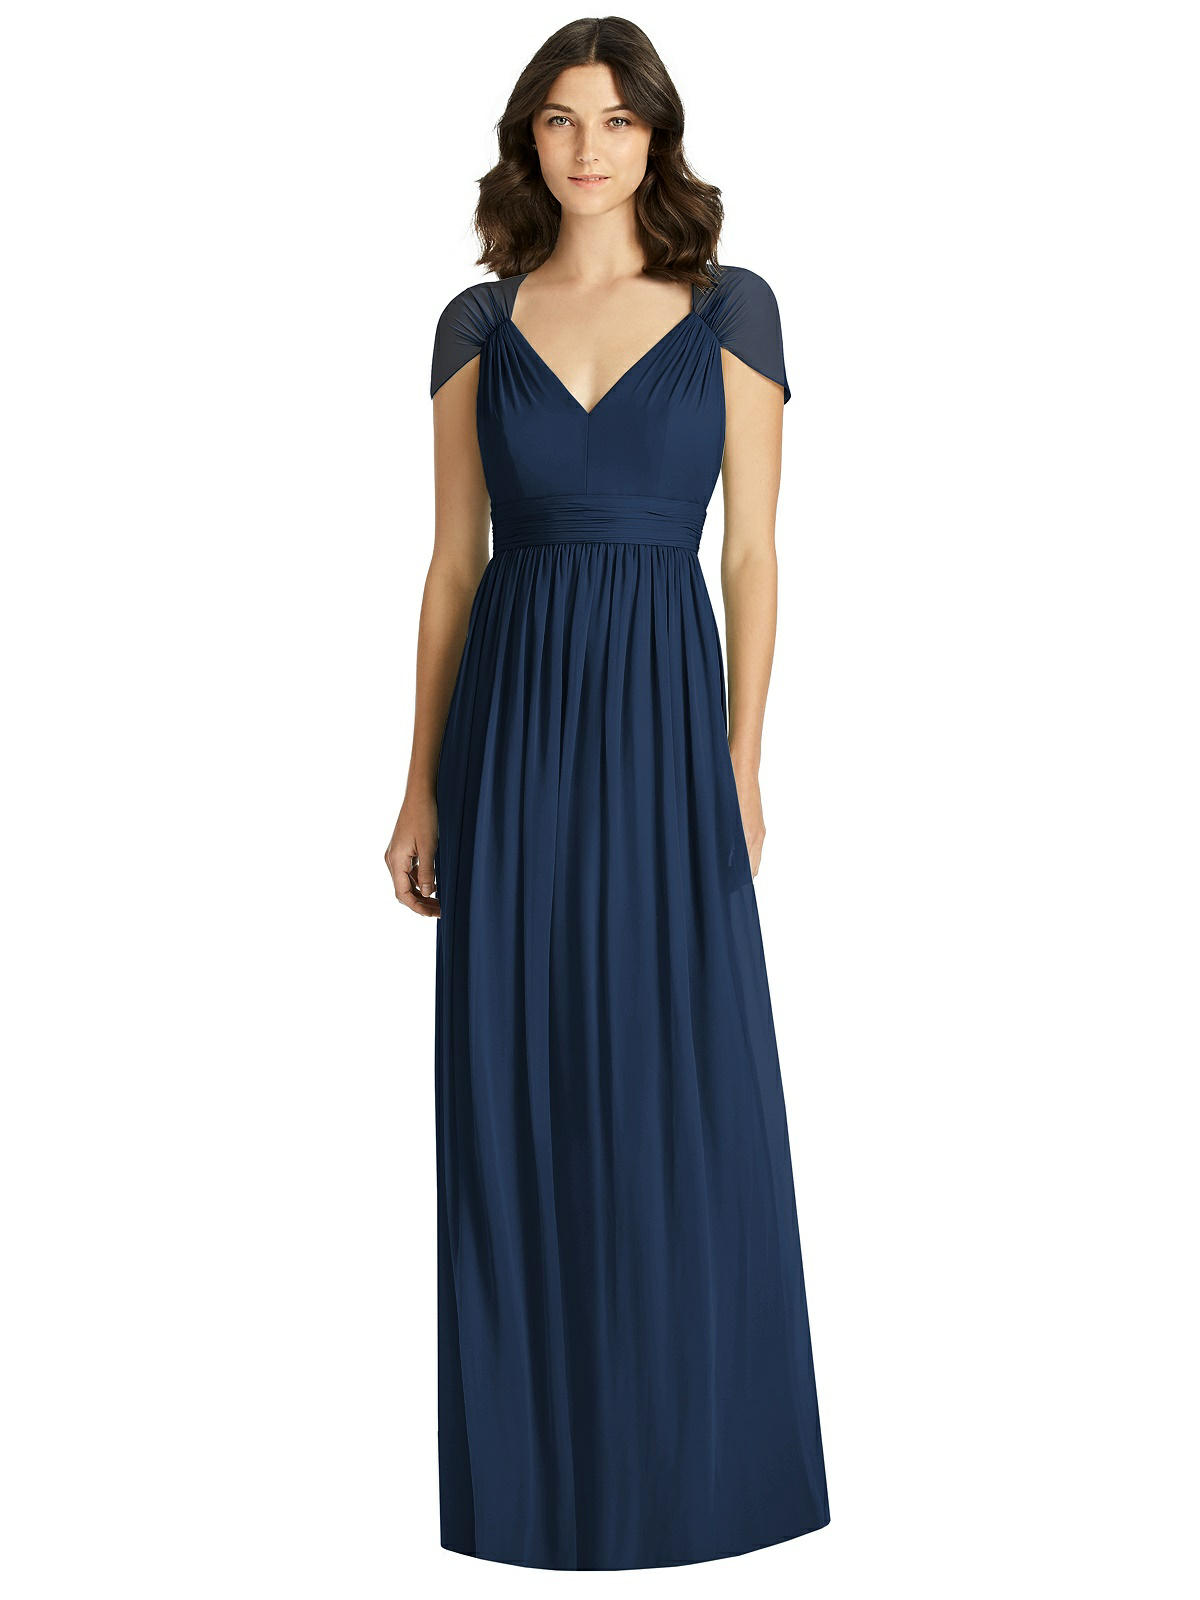 1940s Evening, Prom, Party, Formal, Ball Gowns Jenny Packham Bridesmaid Dress JP1021 $278.00 AT vintagedancer.com